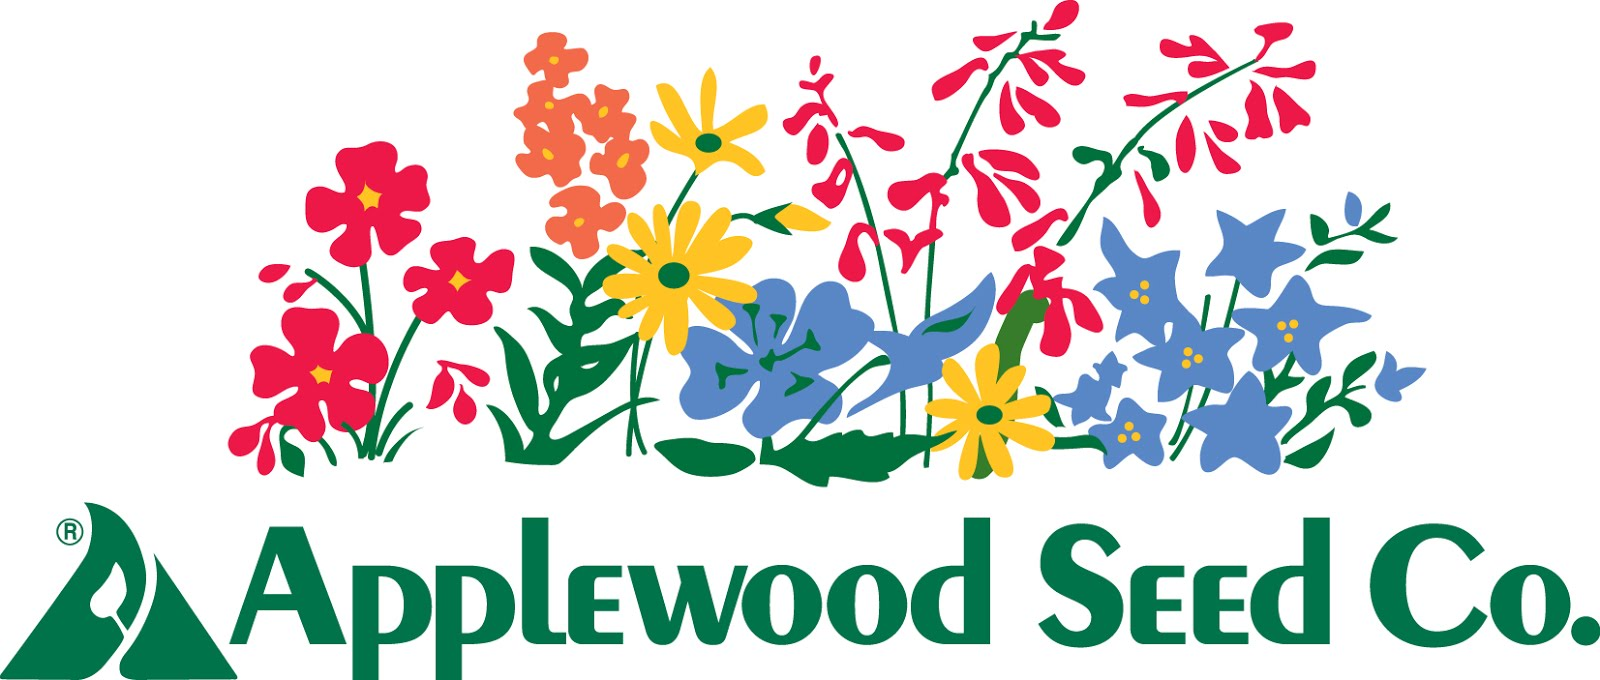 Applewood Seed Co. - Bulk wildflower and garden flower seeds